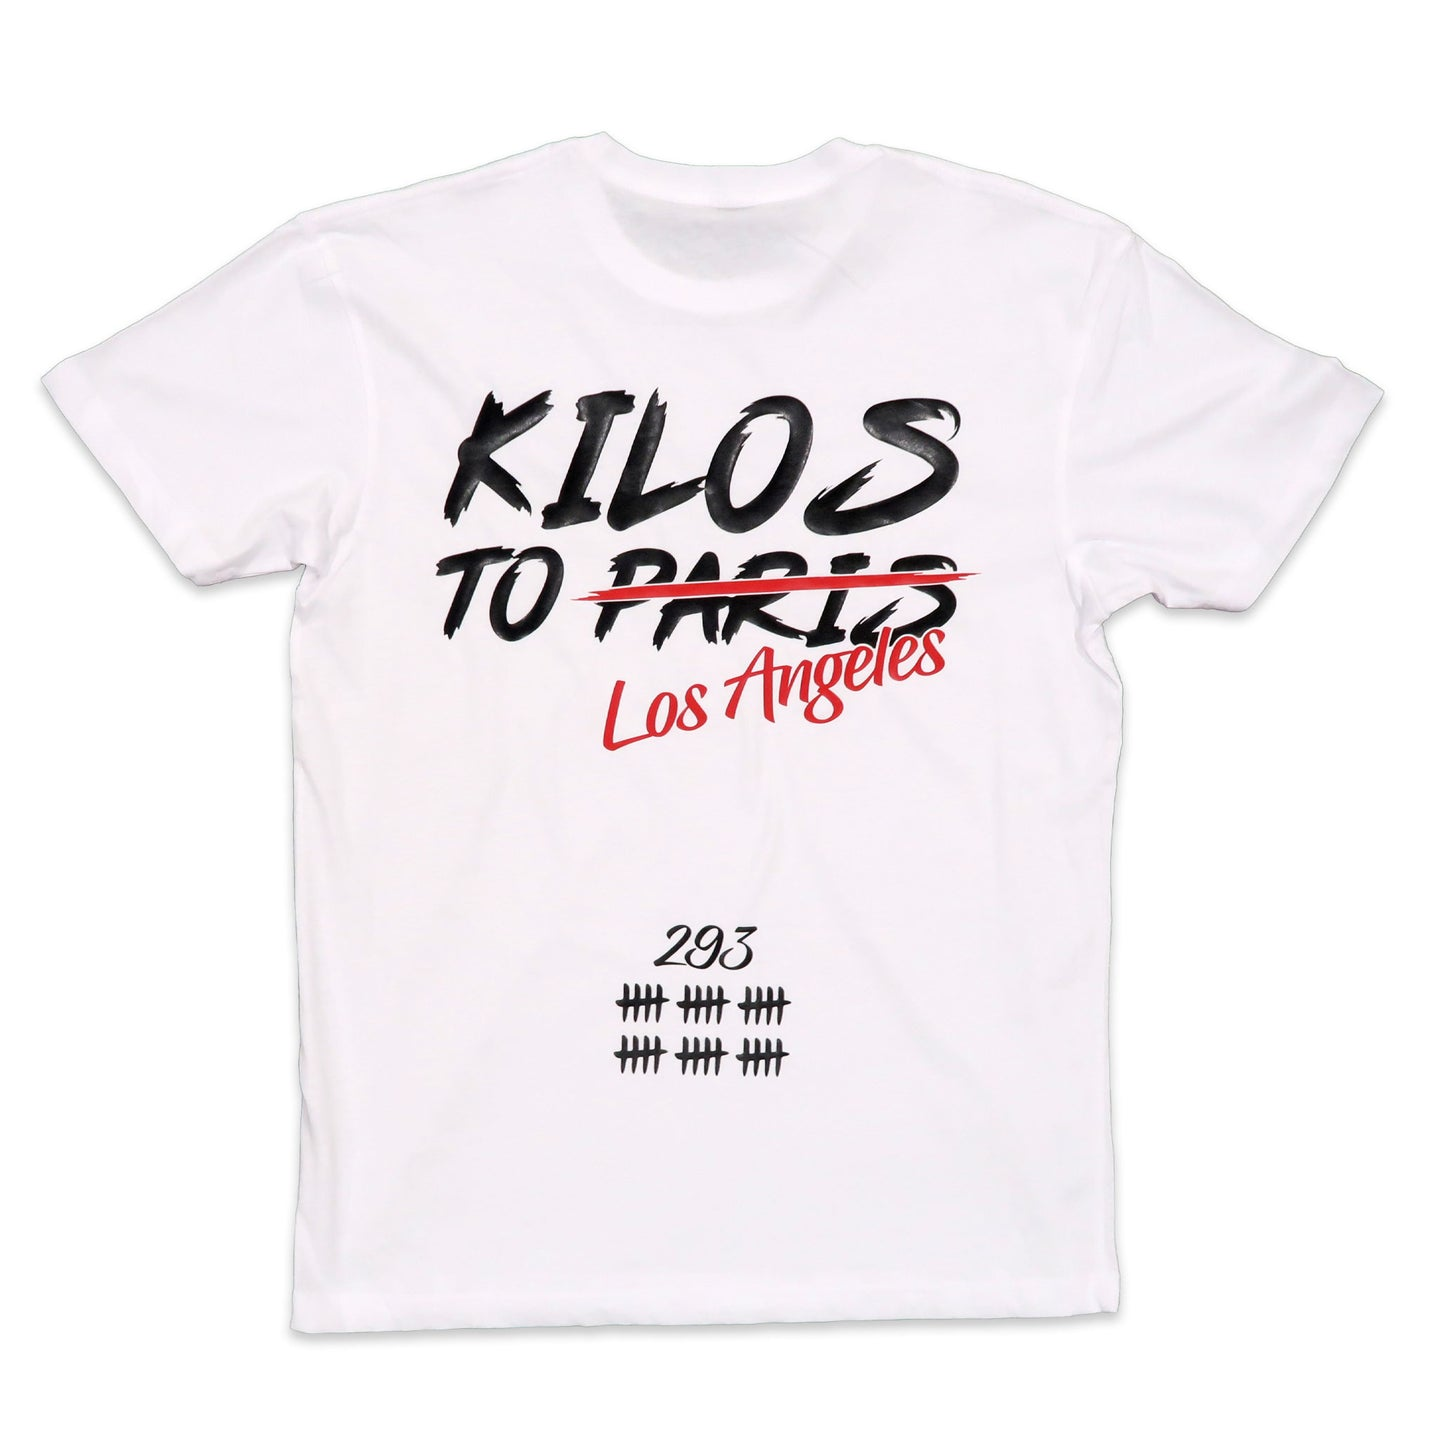 Kilos To Los Angeles Tee in White